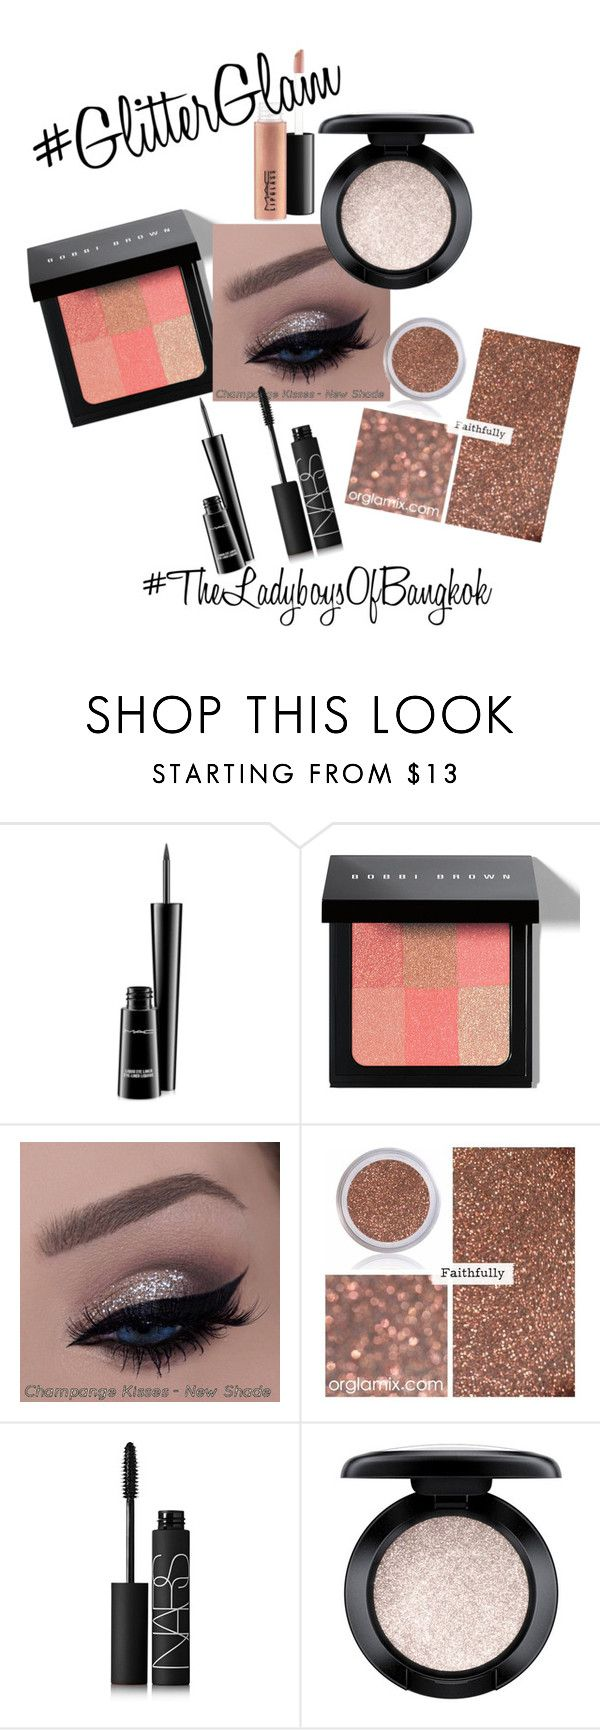 """Get the #Glitz look!"" by theladyboys on Polyvore featuring beauty, MAC Cosmetics, Bobbi Brown Cosmetics, NARS Cosmetics, glitterglam and LadyBoys"